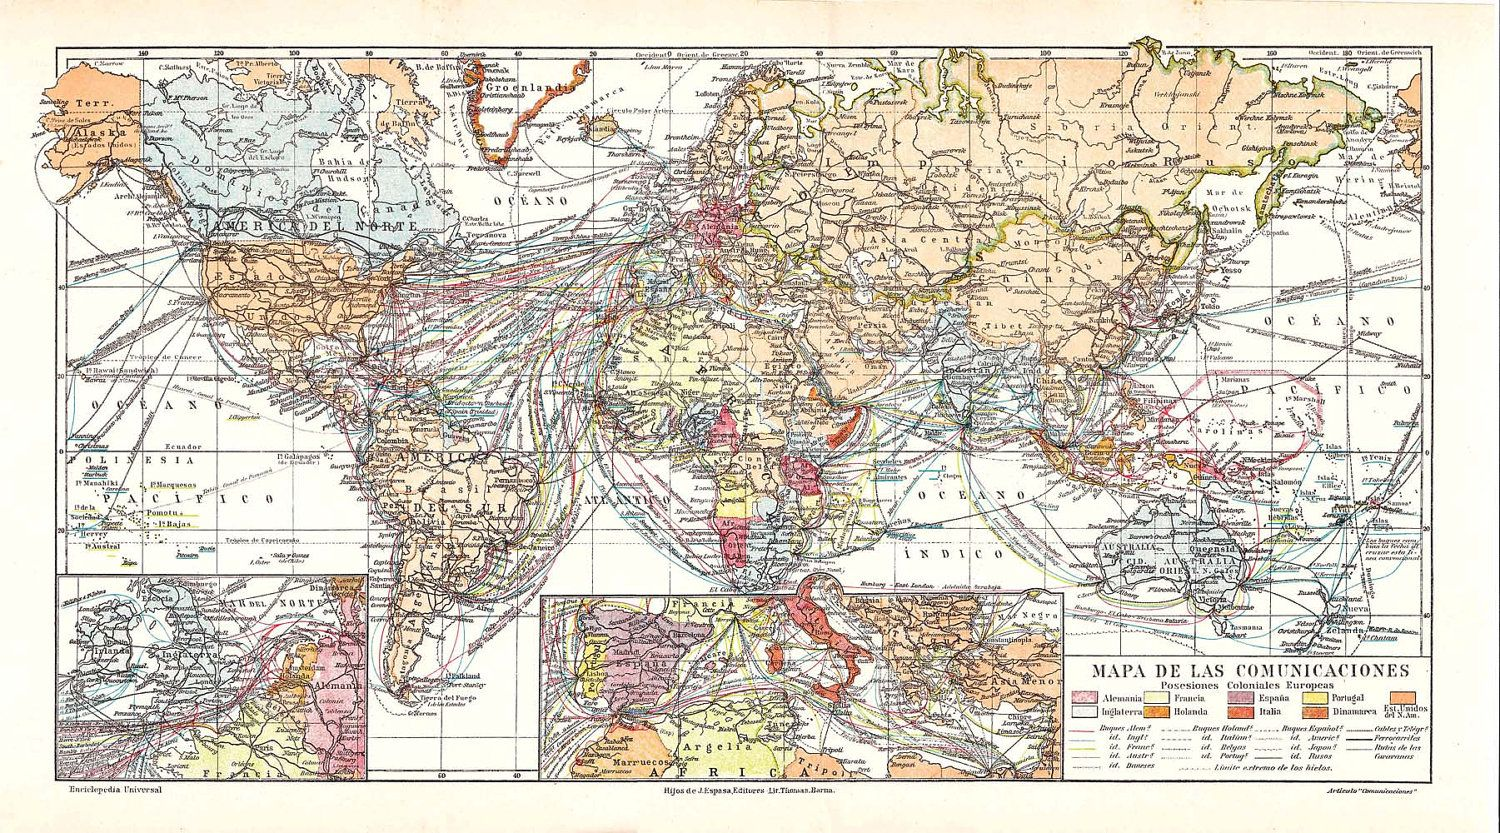 s antique world map communications  maritime trade routes. s antique world map communications  maritime trade routes